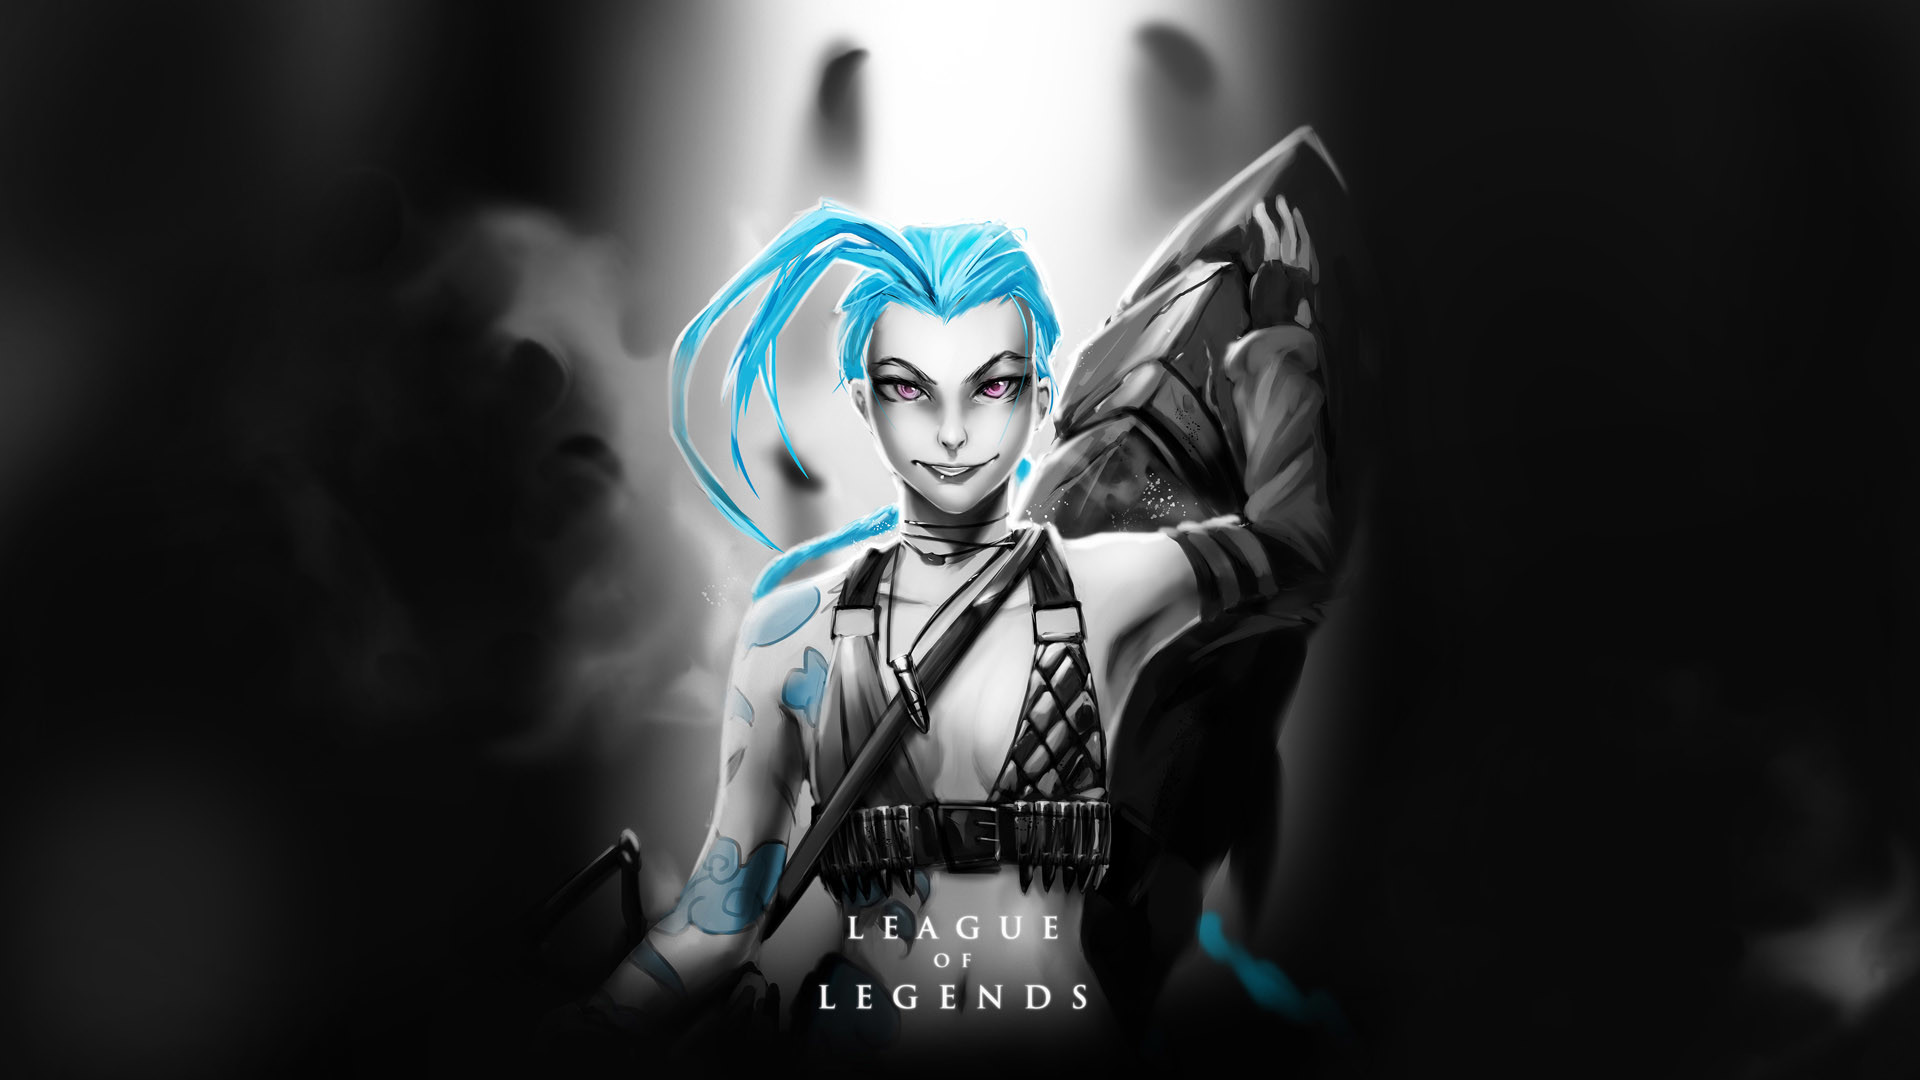 1920x1080  Jinx League Of Legends Wallpaper Jinx league of legends hd